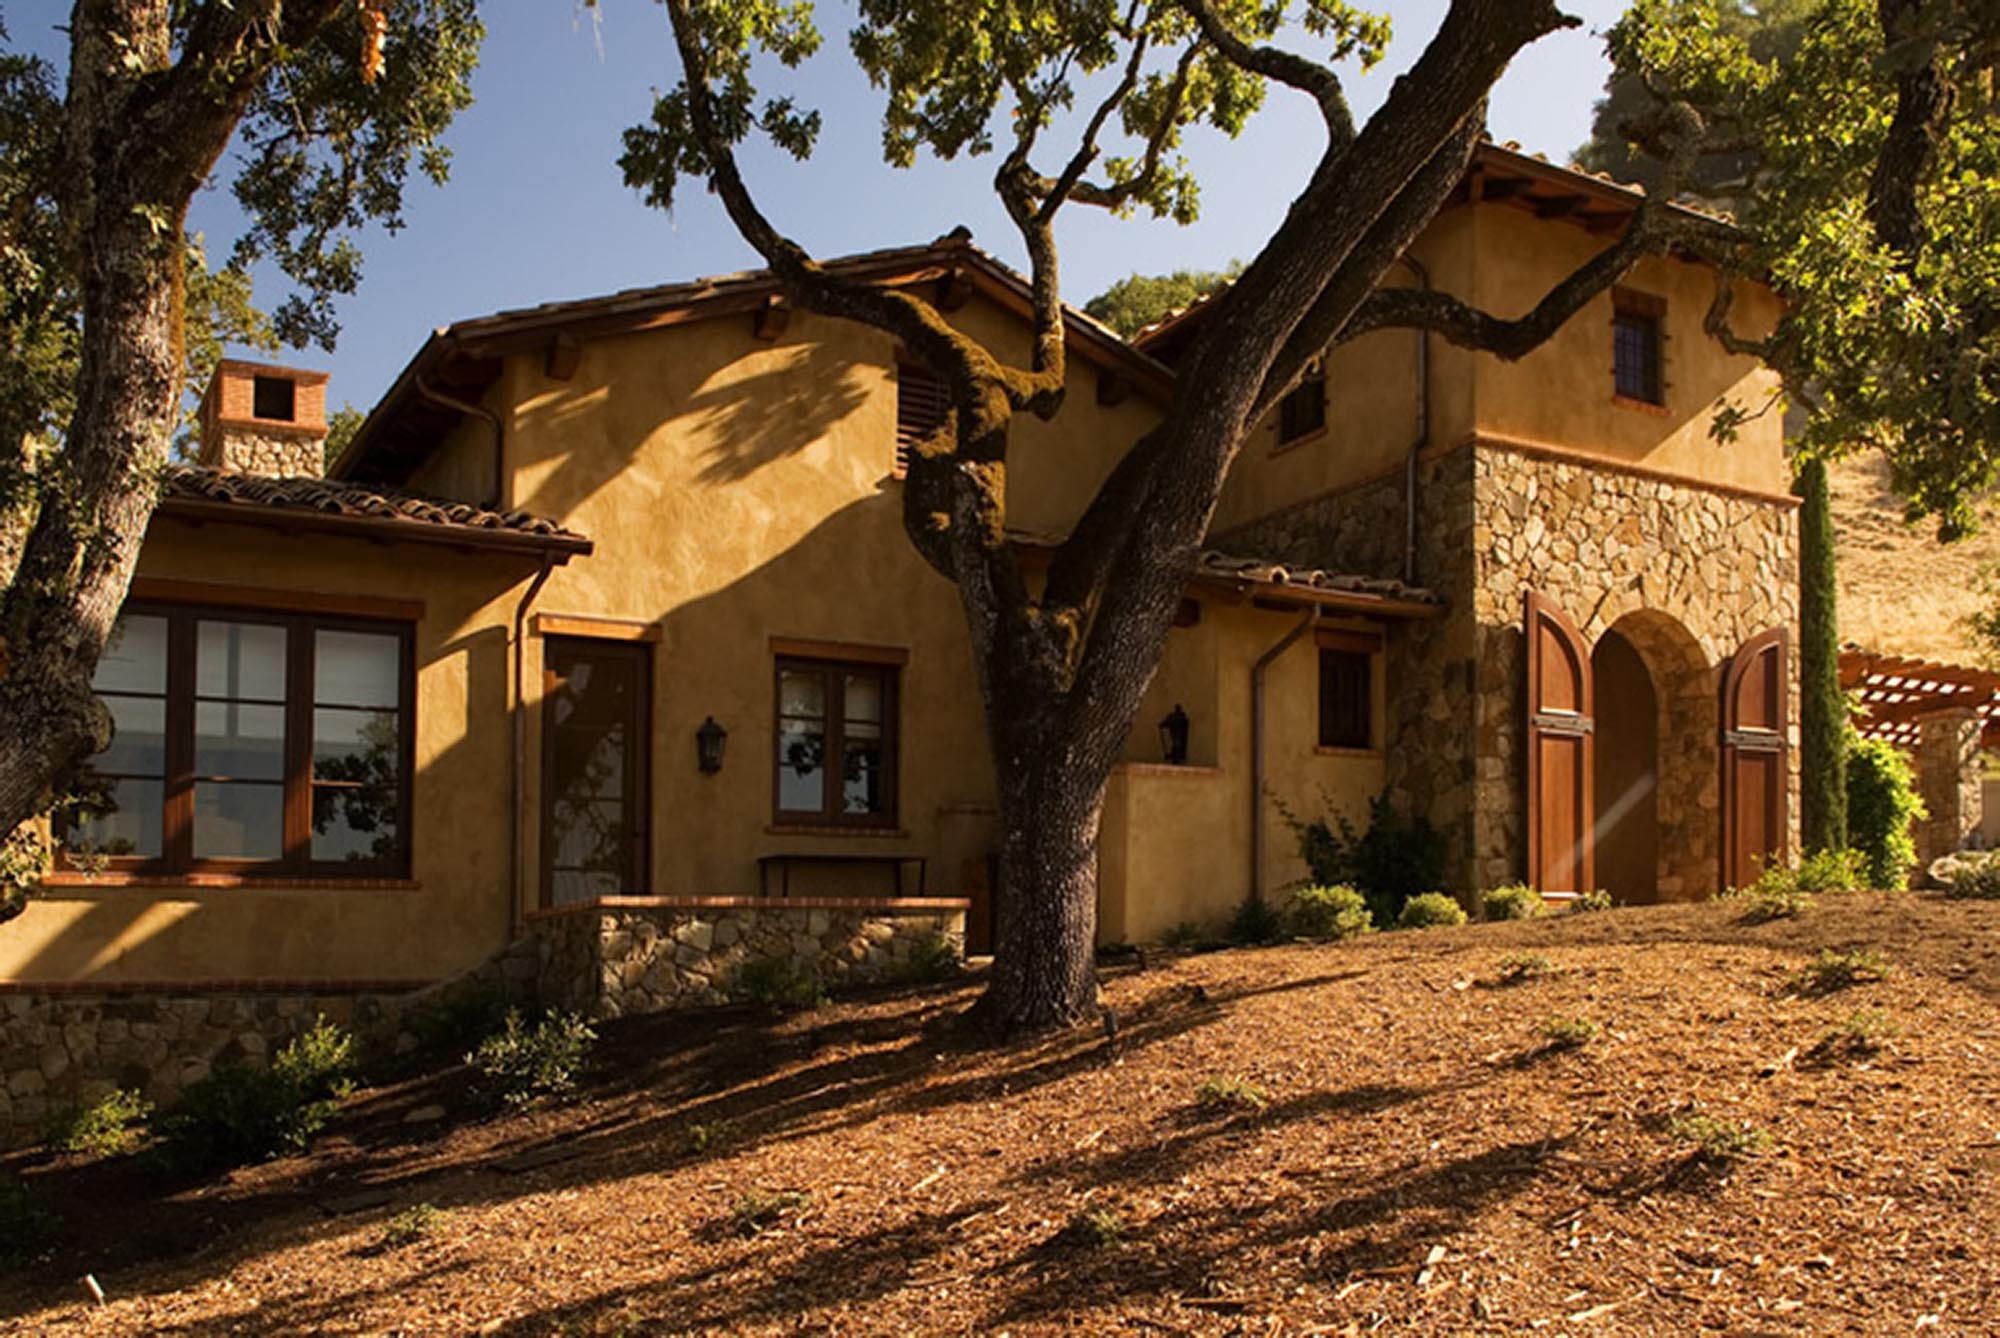 Wine Country Retreat exterior